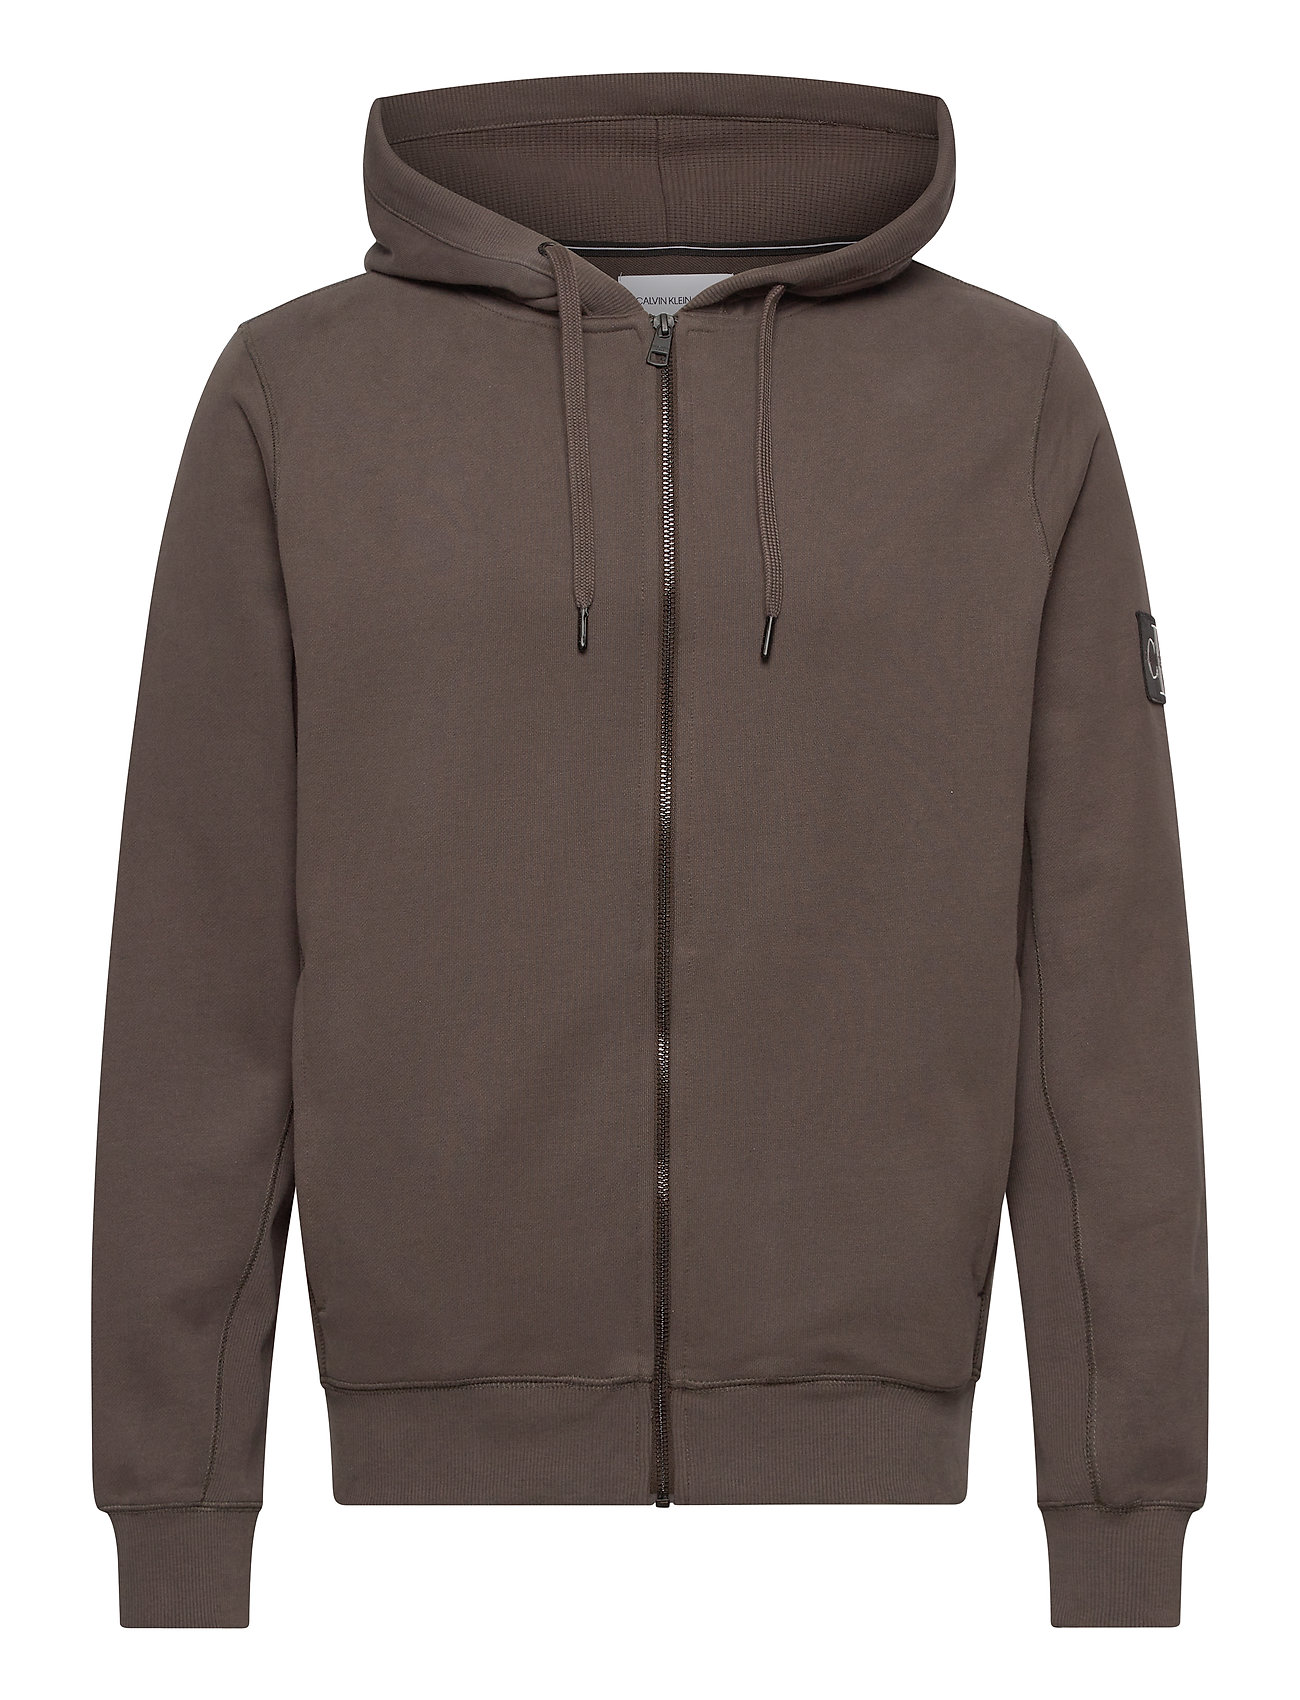 Image of Monogram Badge Zip Up Hoodie Hoodie Trøje Grå Calvin Klein Jeans (3441397427)